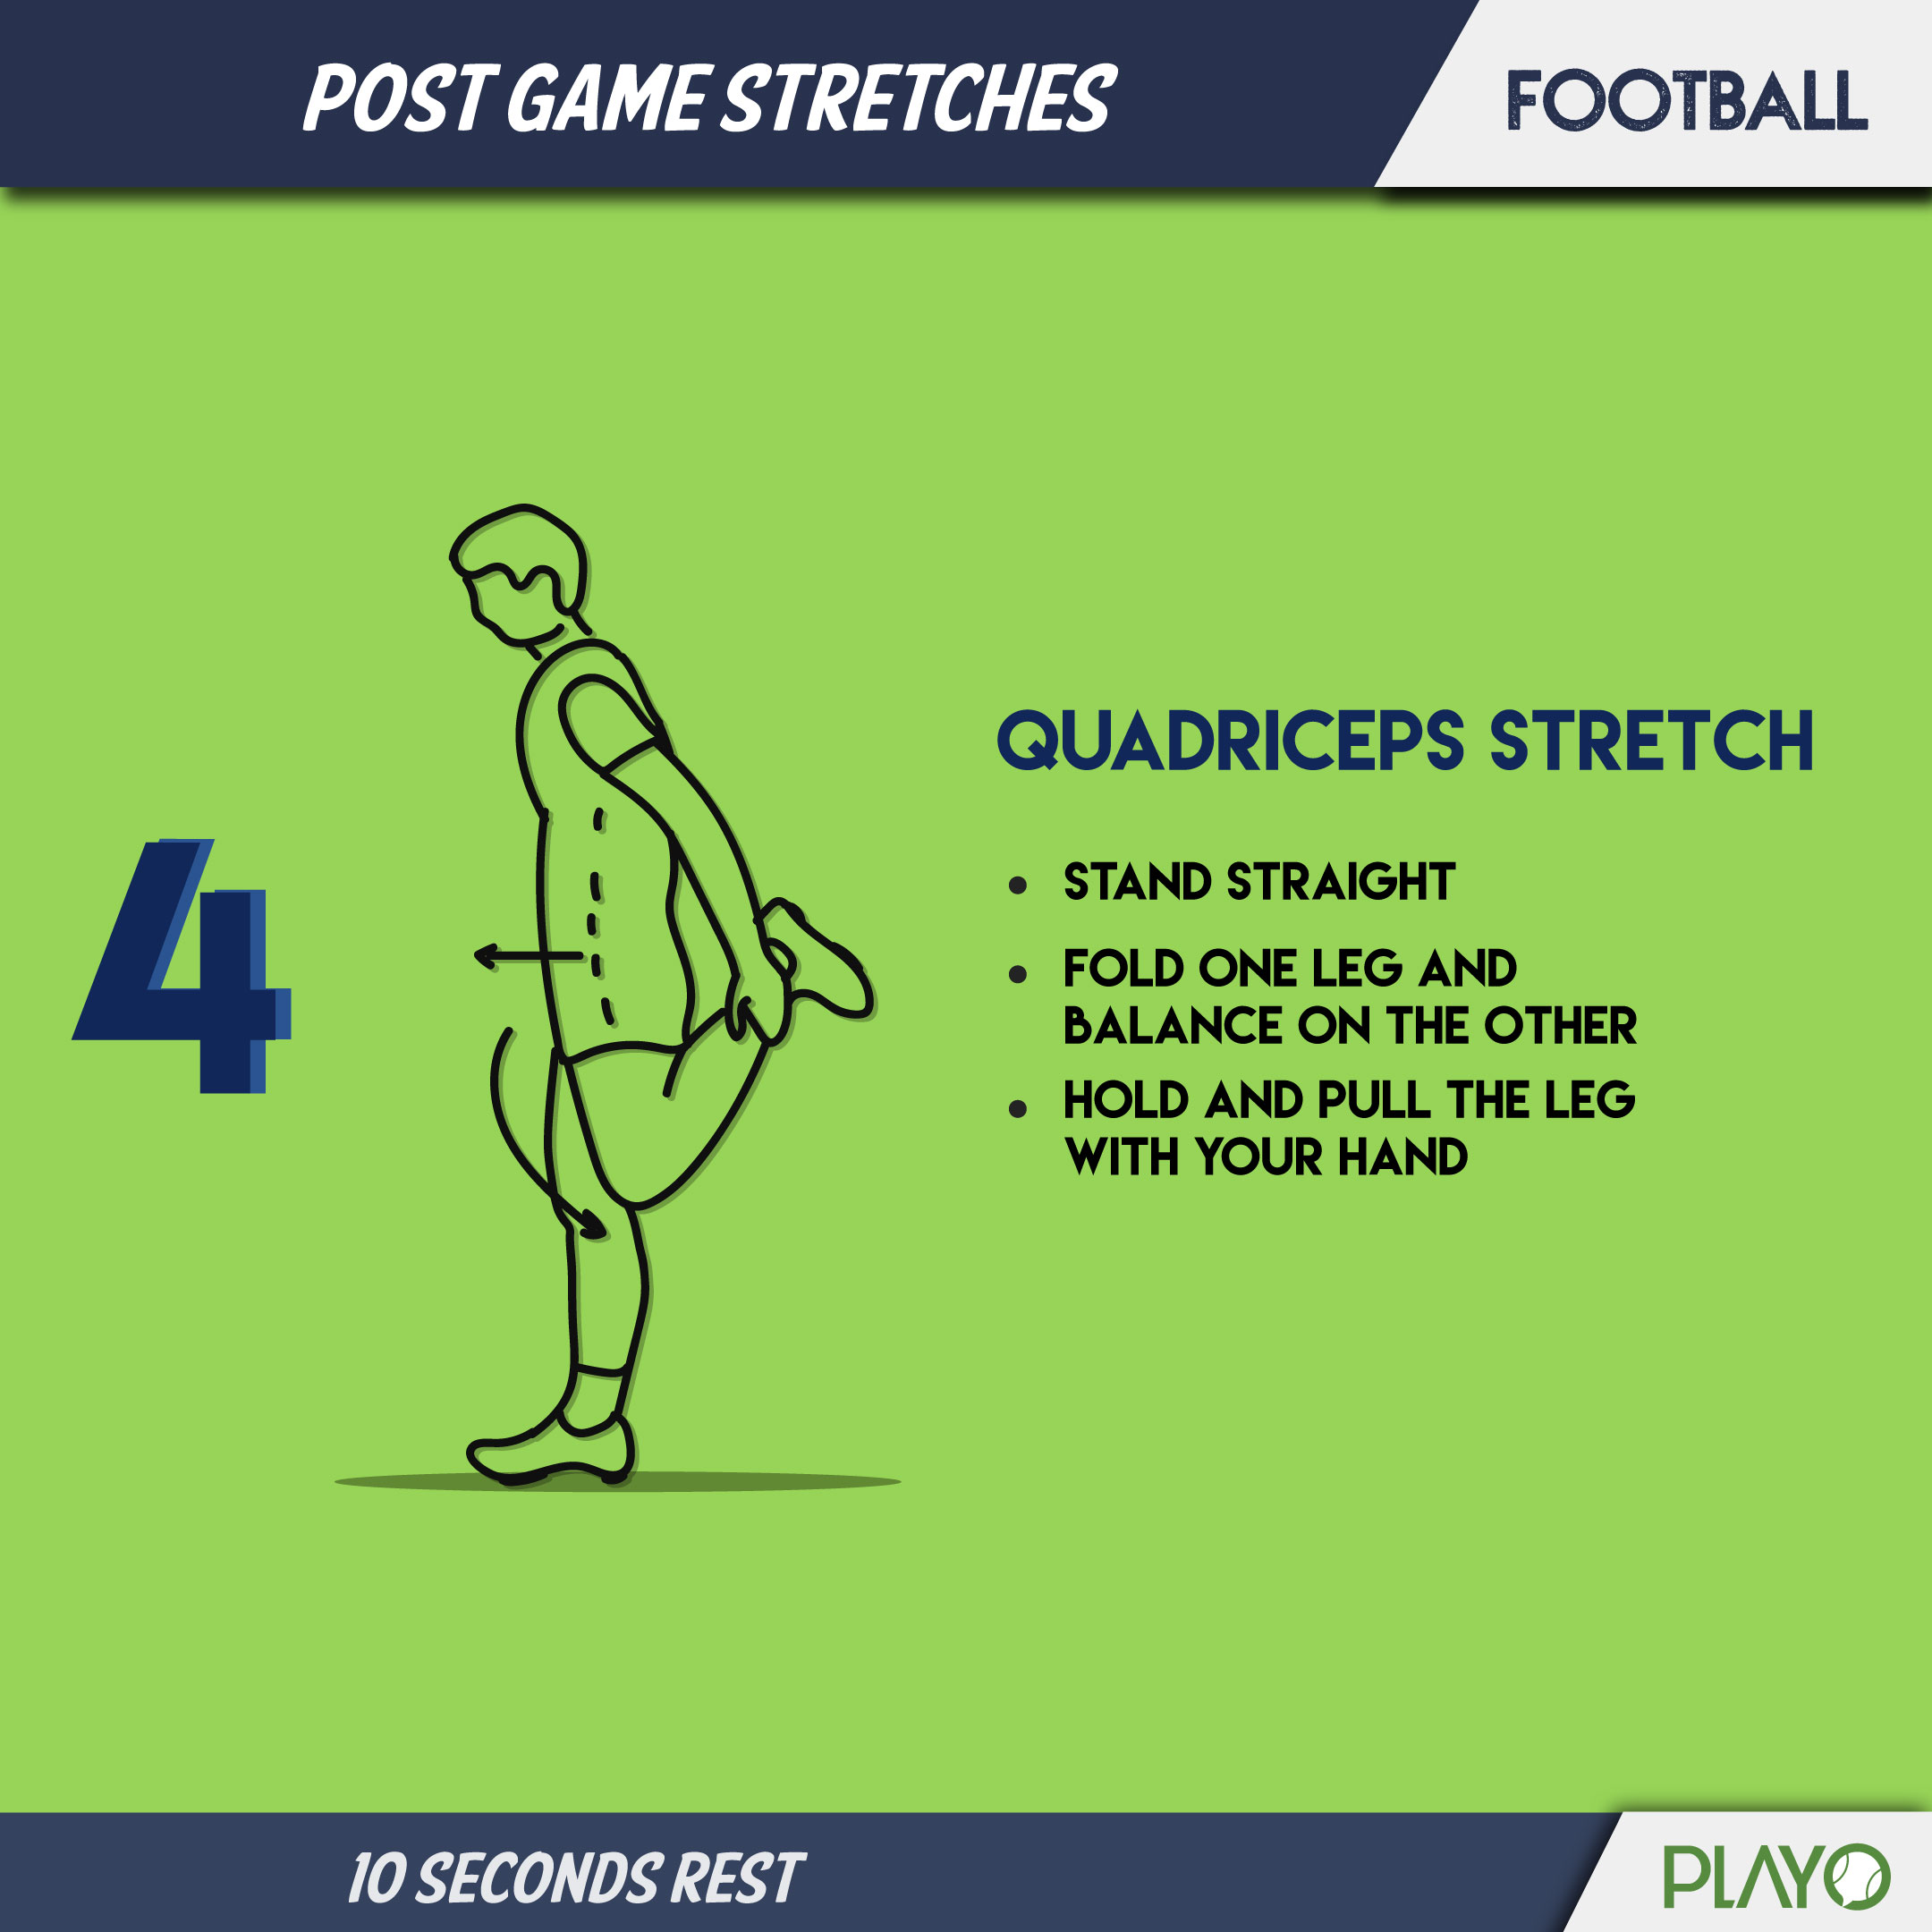 Quadriceps stretch to cool you down after football